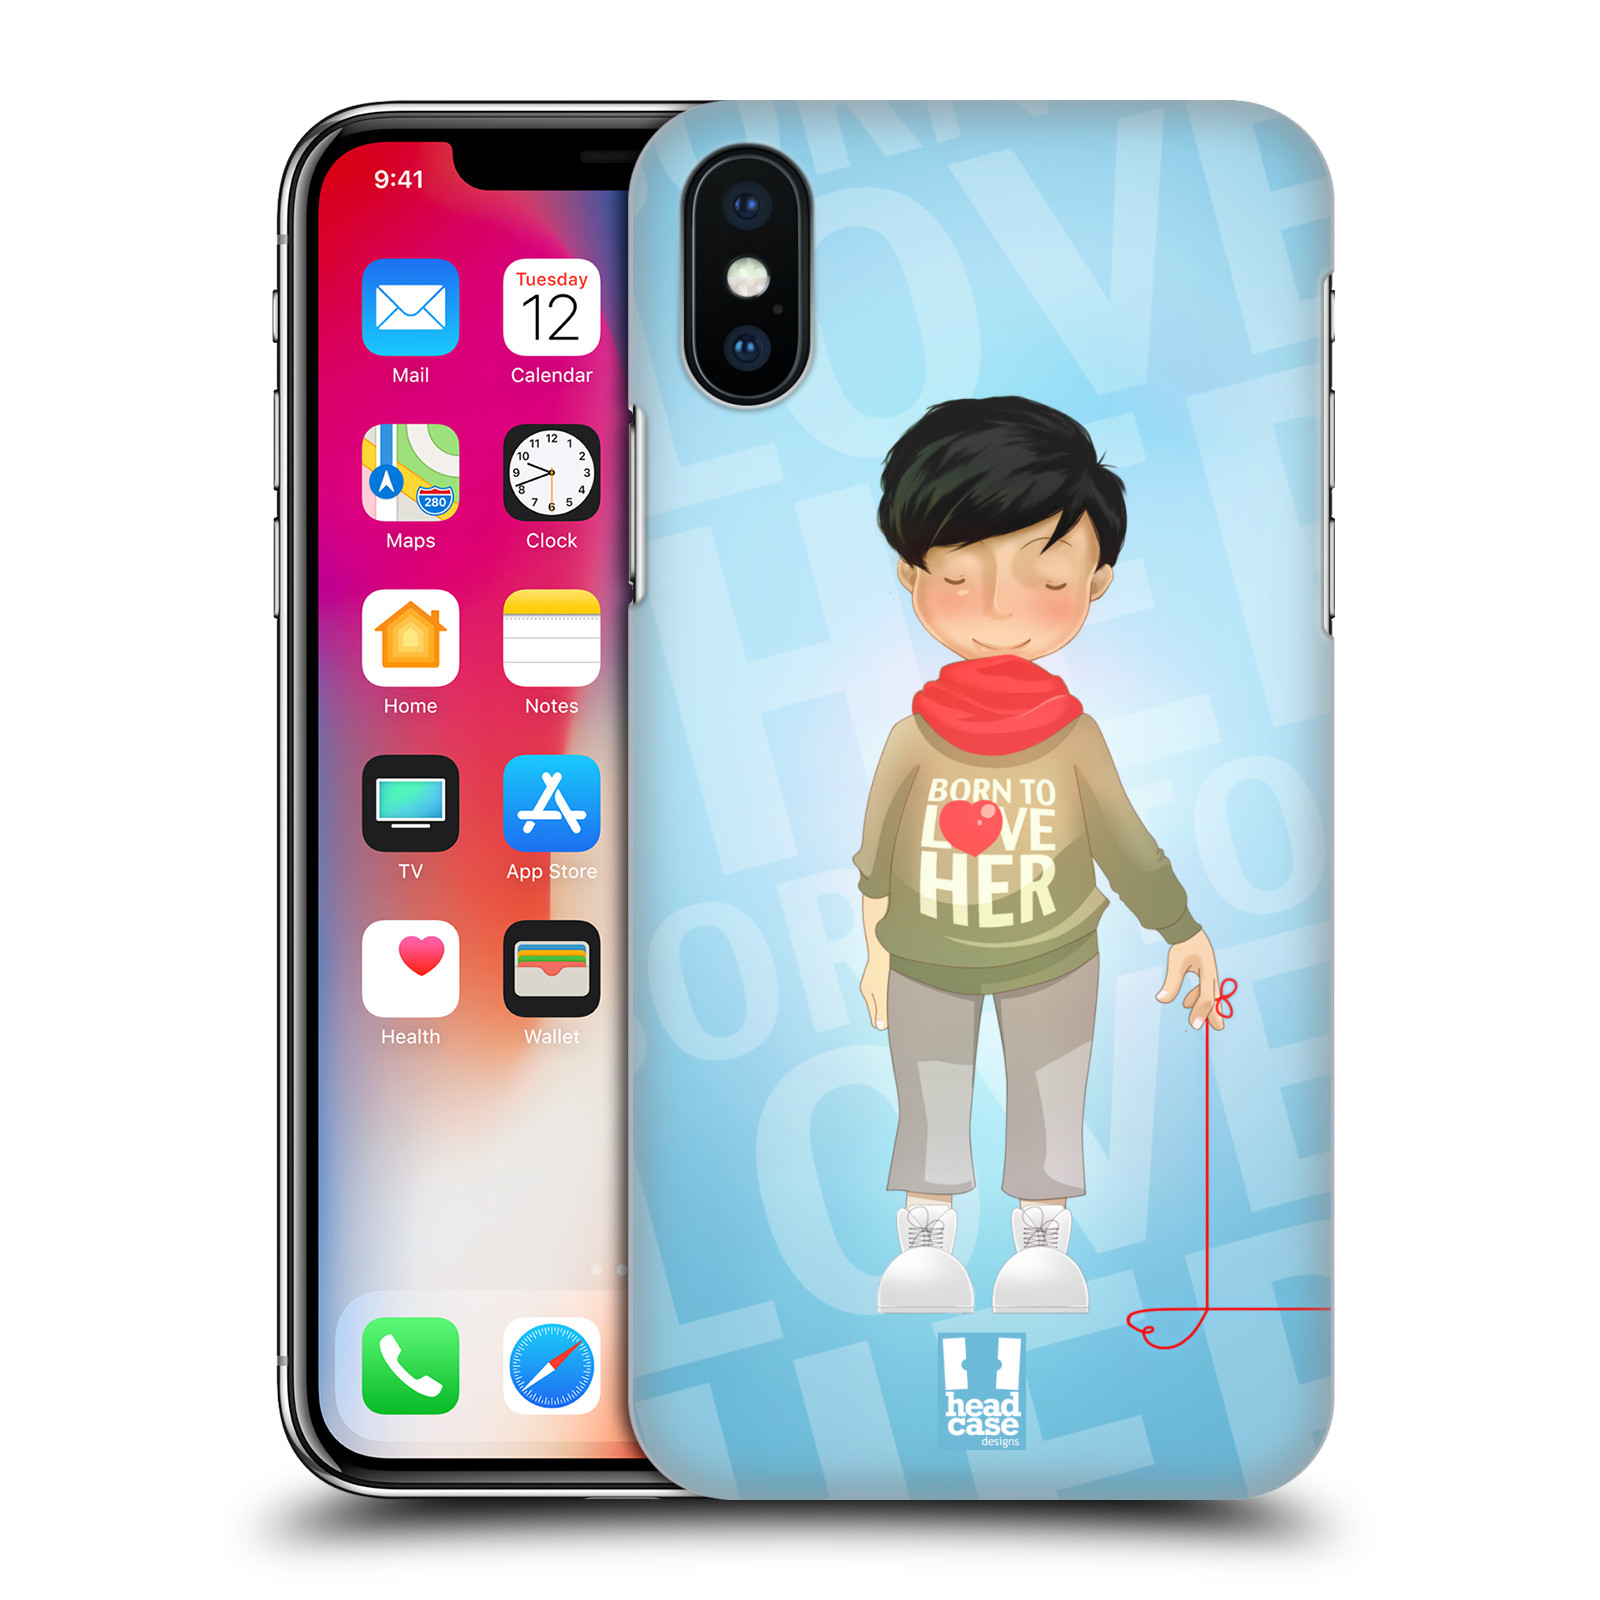 HEAD-CASE-DESIGNS-DIBUJOS-ANIMADOS-DE-PAREJA-CASO-PARA-APPLE-iPHONE-TELEFONOS